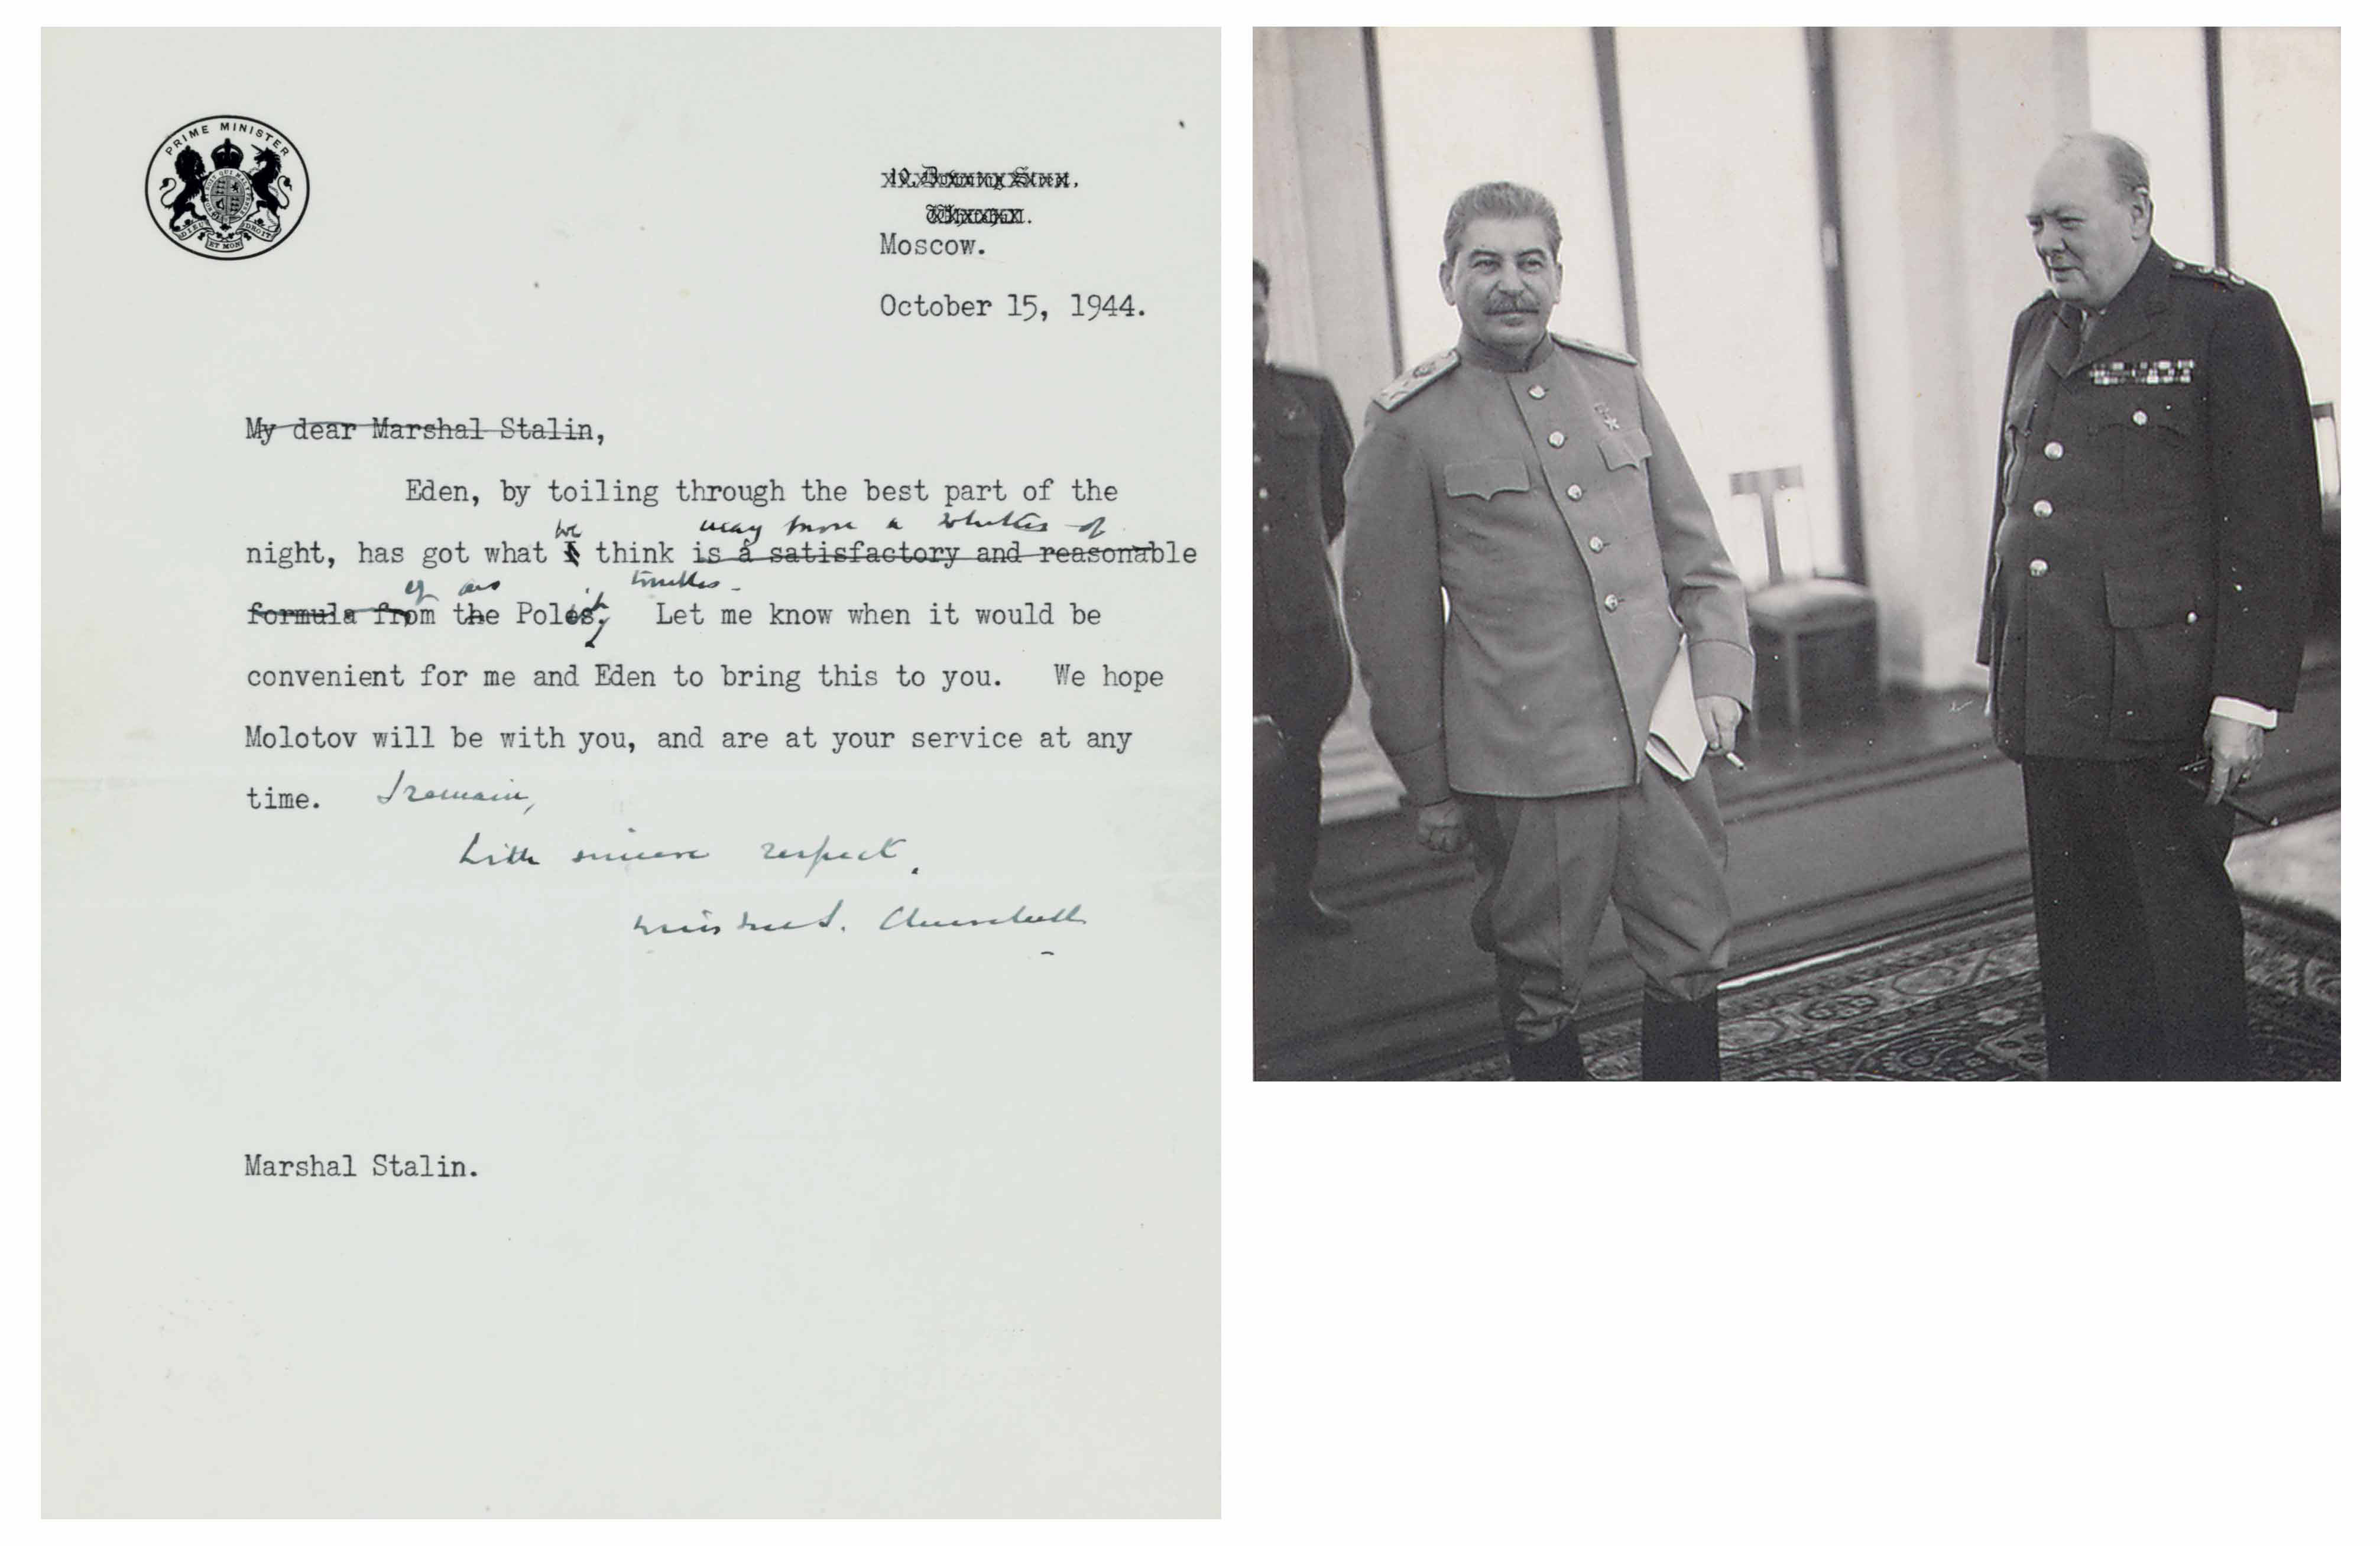 """CHURCHILL, Winston S. Typed draft latter signed (""""Winston S. Churchill"""") to Josef Stalin (1879-1953), Moscow, 15 October 1944. 1 page, 4to, on Prime Minister's stationery."""